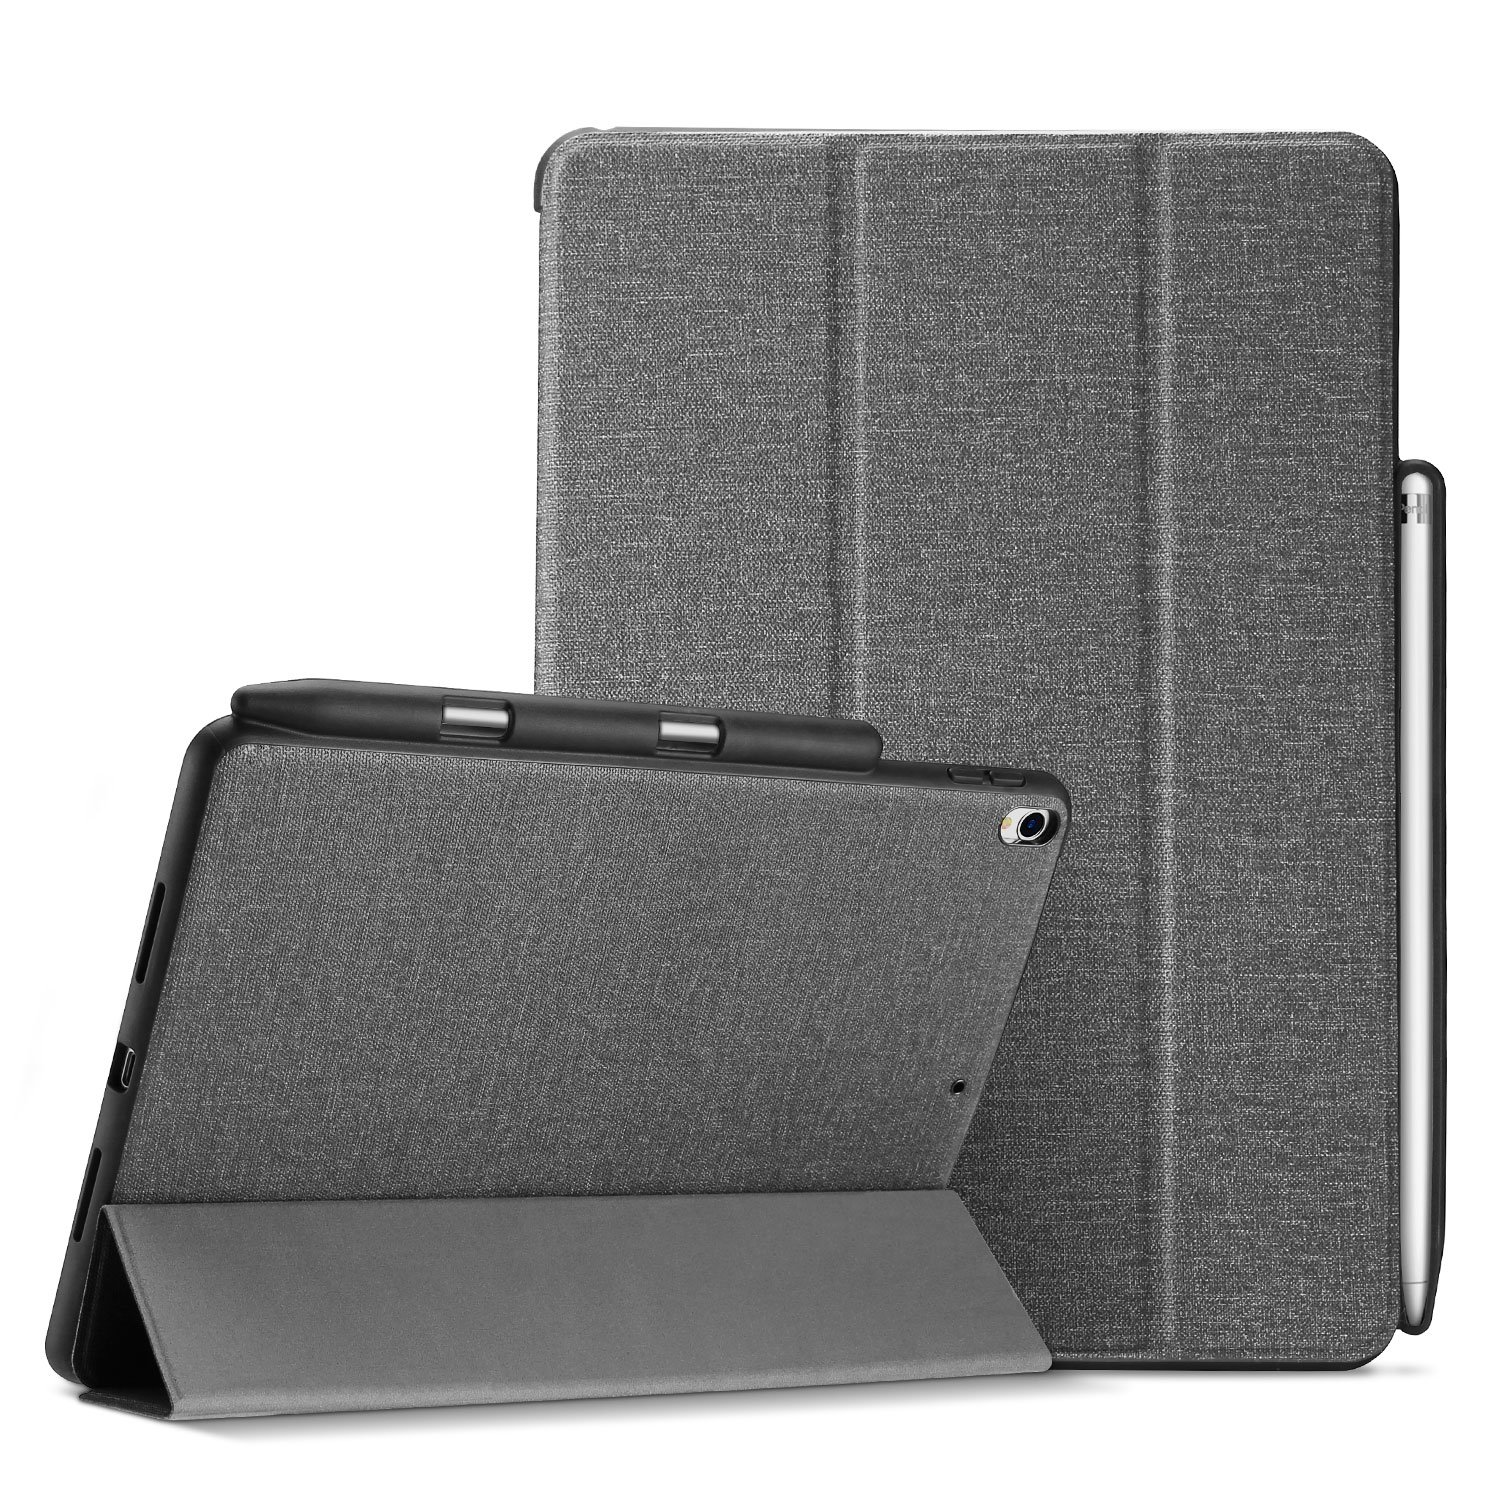 "ProCase iPad Air (3rd Gen) 10.5"" 2019 / iPad Pro 10.5 Case, Slim Folio Stand Protective Book Cover Case Lightweight Smart Cover for iPad Air 10.5 2019 / iPad Pro 10.5 with Apple Pencil Holder –Grey"